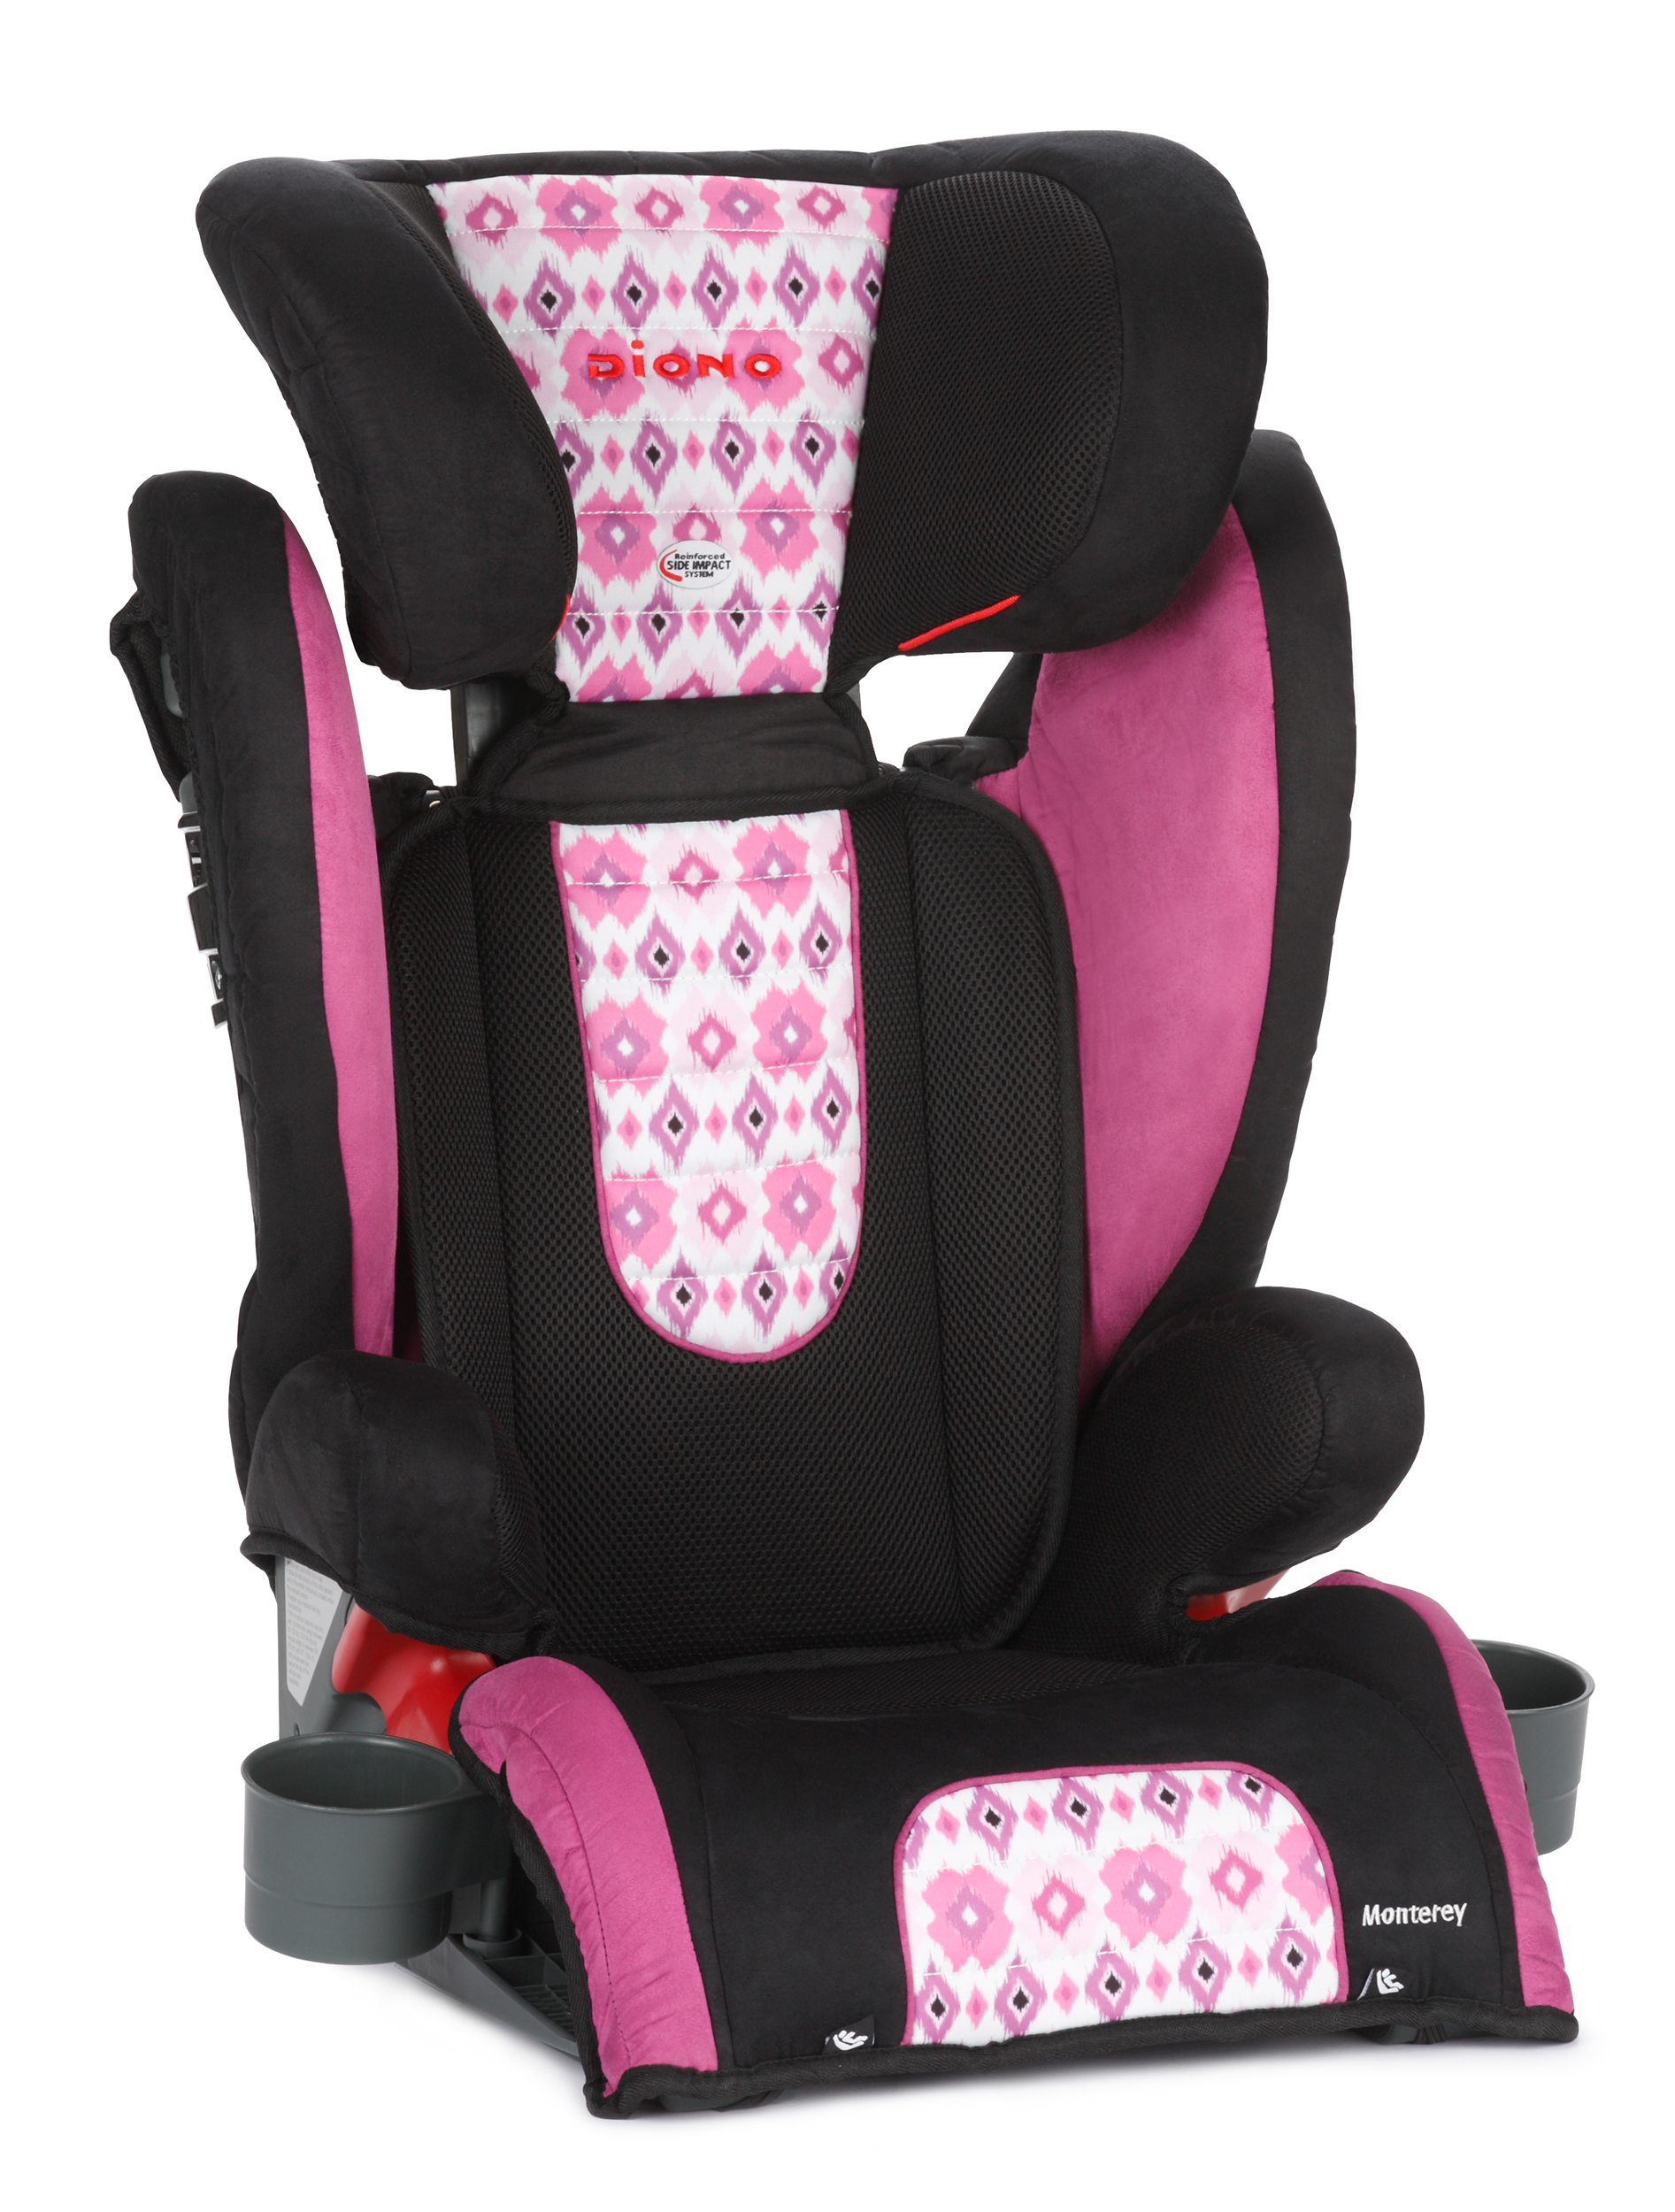 september is baby safety month car seat safety 101 helpful tips from diono. Black Bedroom Furniture Sets. Home Design Ideas